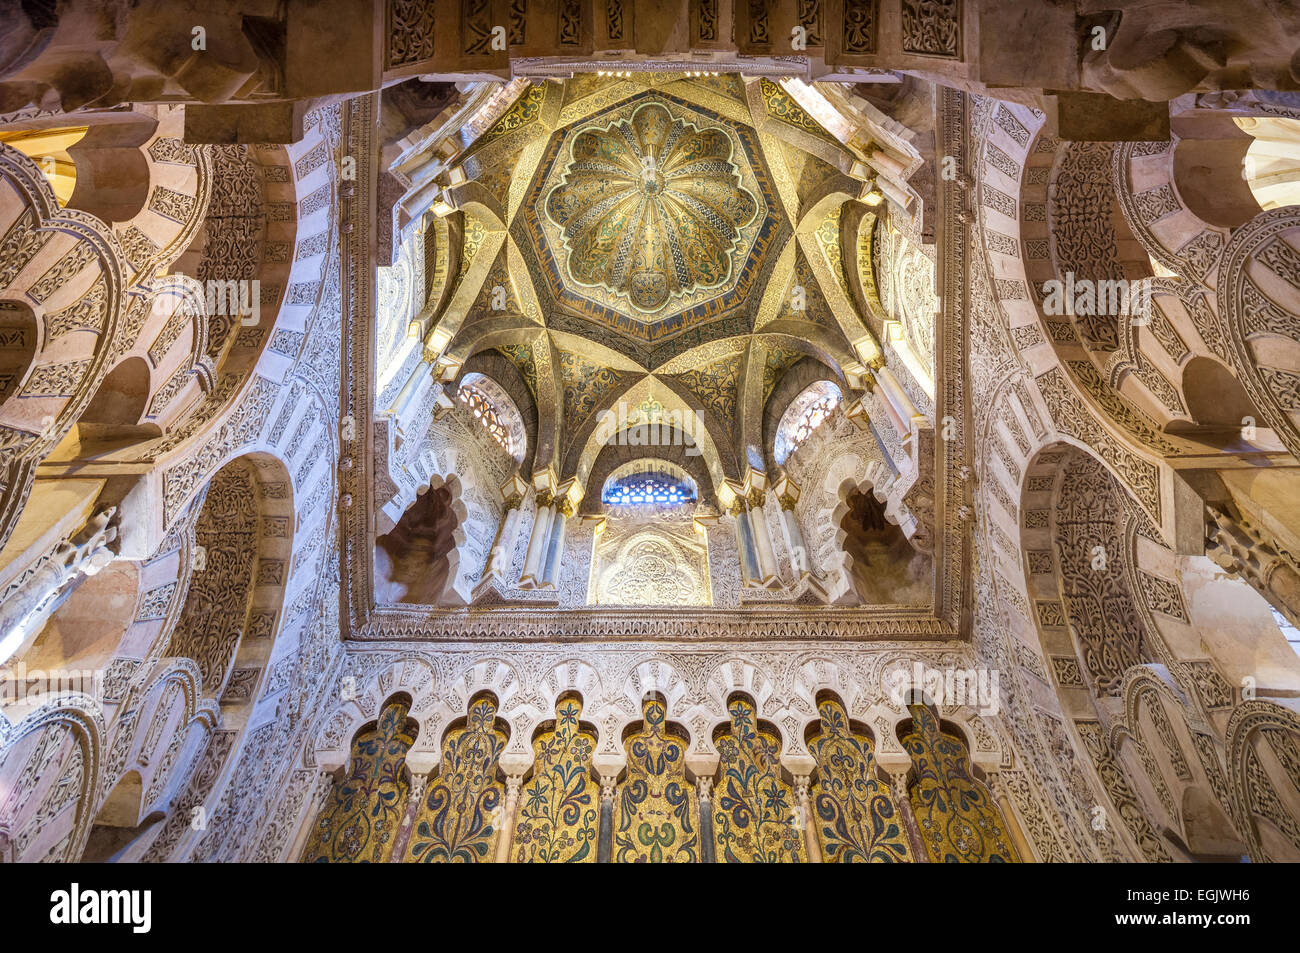 http://c7.alamy.com/comp/EGJWH6/cordoba-spain-great-mosque-interior-ceiling-of-the-cupola-above-the-EGJWH6.jpg